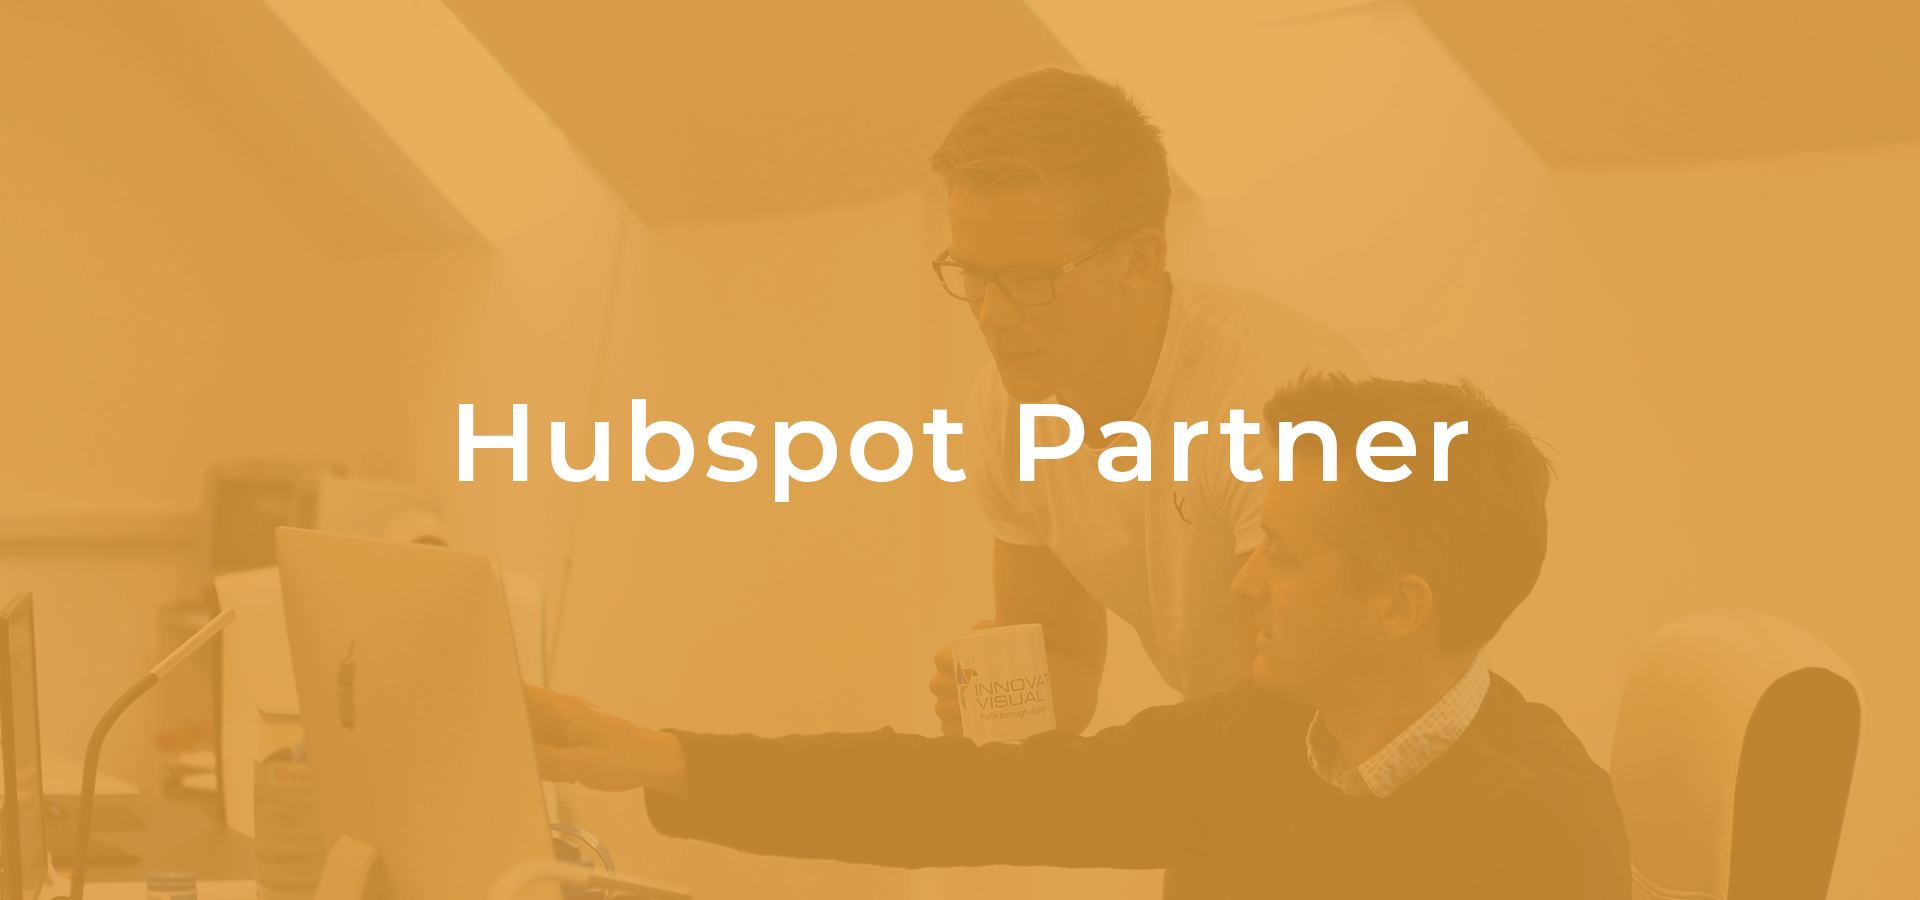 Innovation-Visual-Hubspot-Partner-Banner